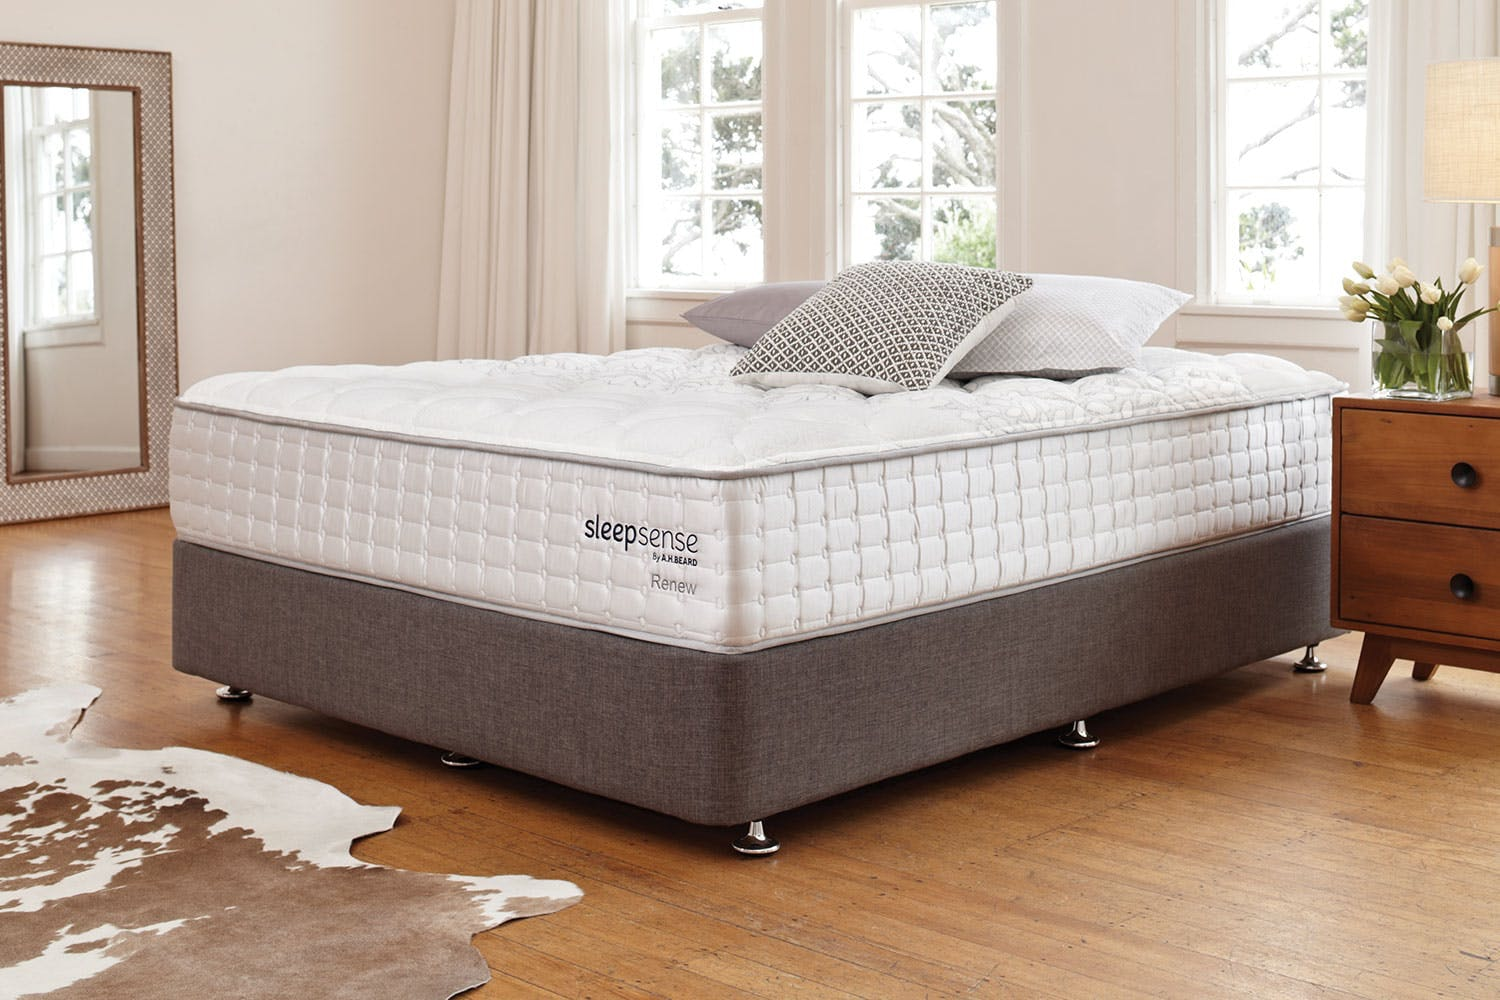 Renew Double Bed by Sleepsense